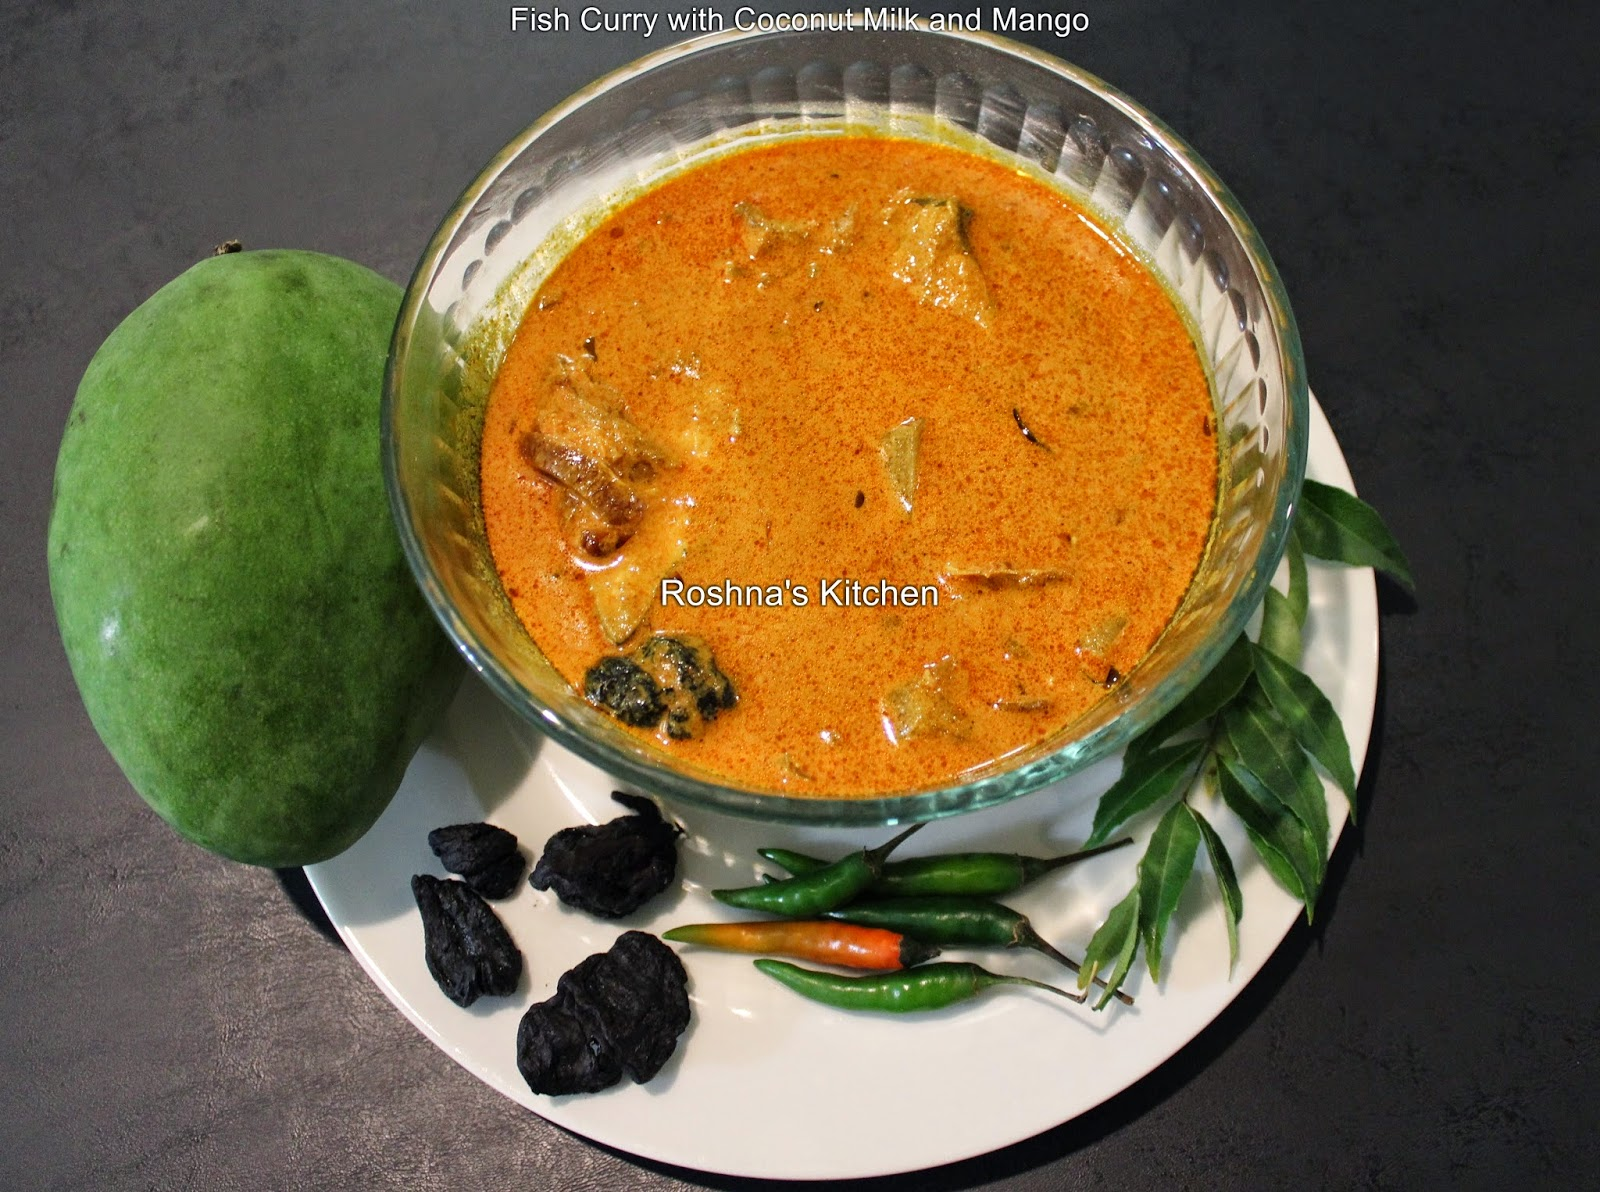 Fish Curry with Coconut Milk and Mango